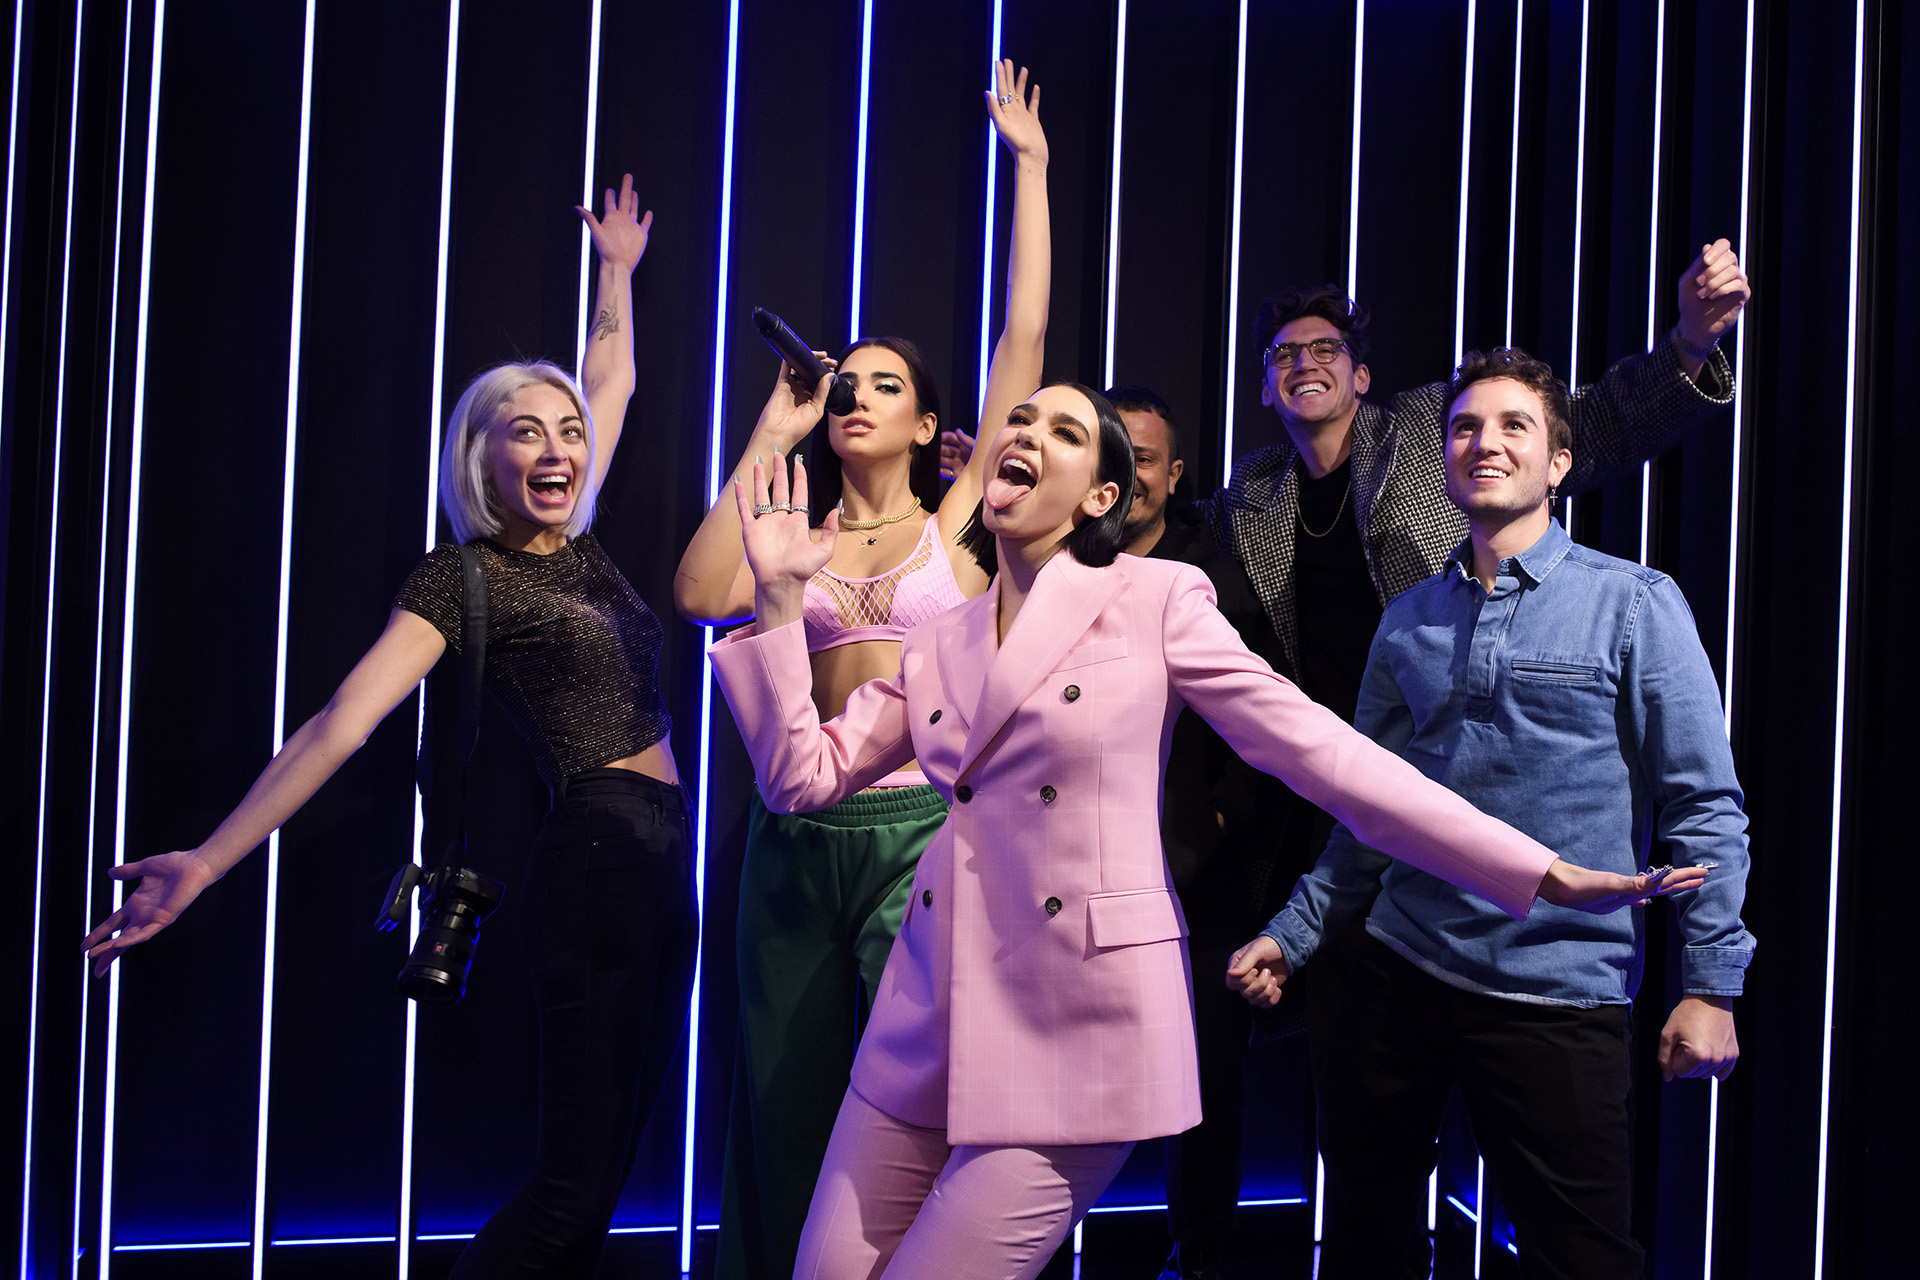 Dua Lipa with her figure and fans at Madame Tussauds